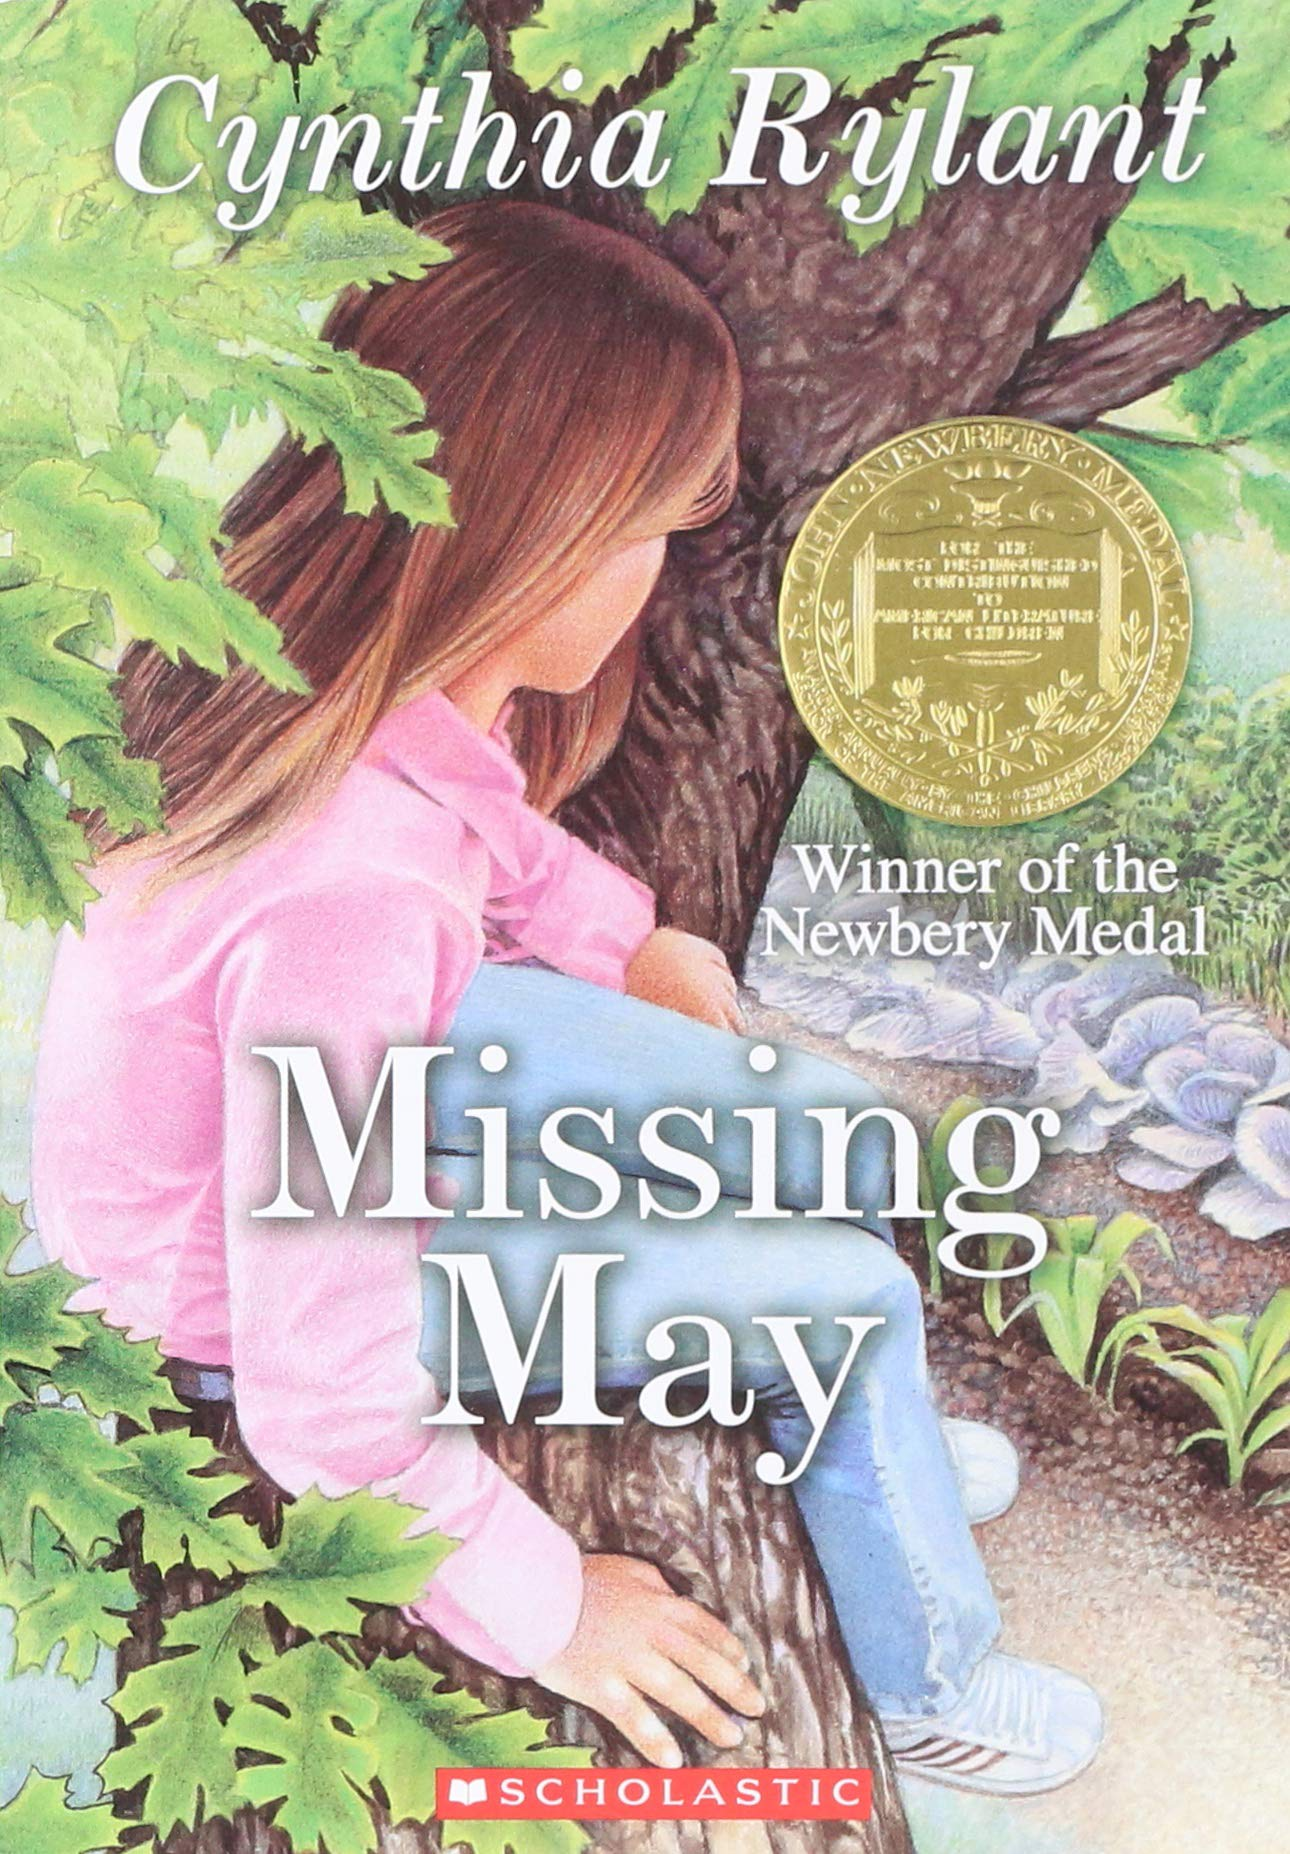 Missing May (Scholastic Gold) (Mass Market Paperback)